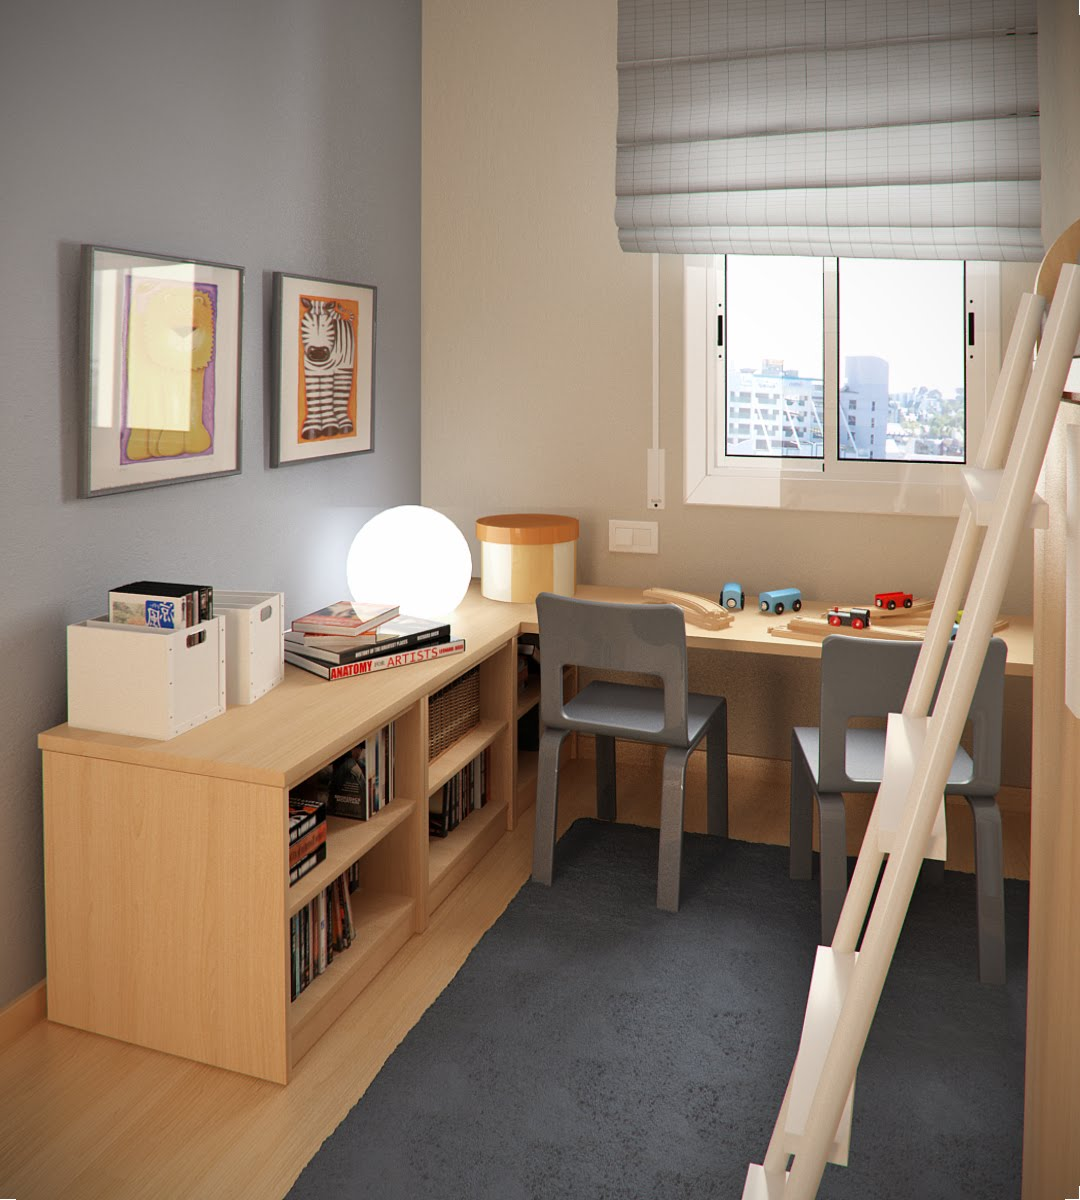 Space Saving Ideas For Small Kids Rooms Layout Home Design And Decor Reviews